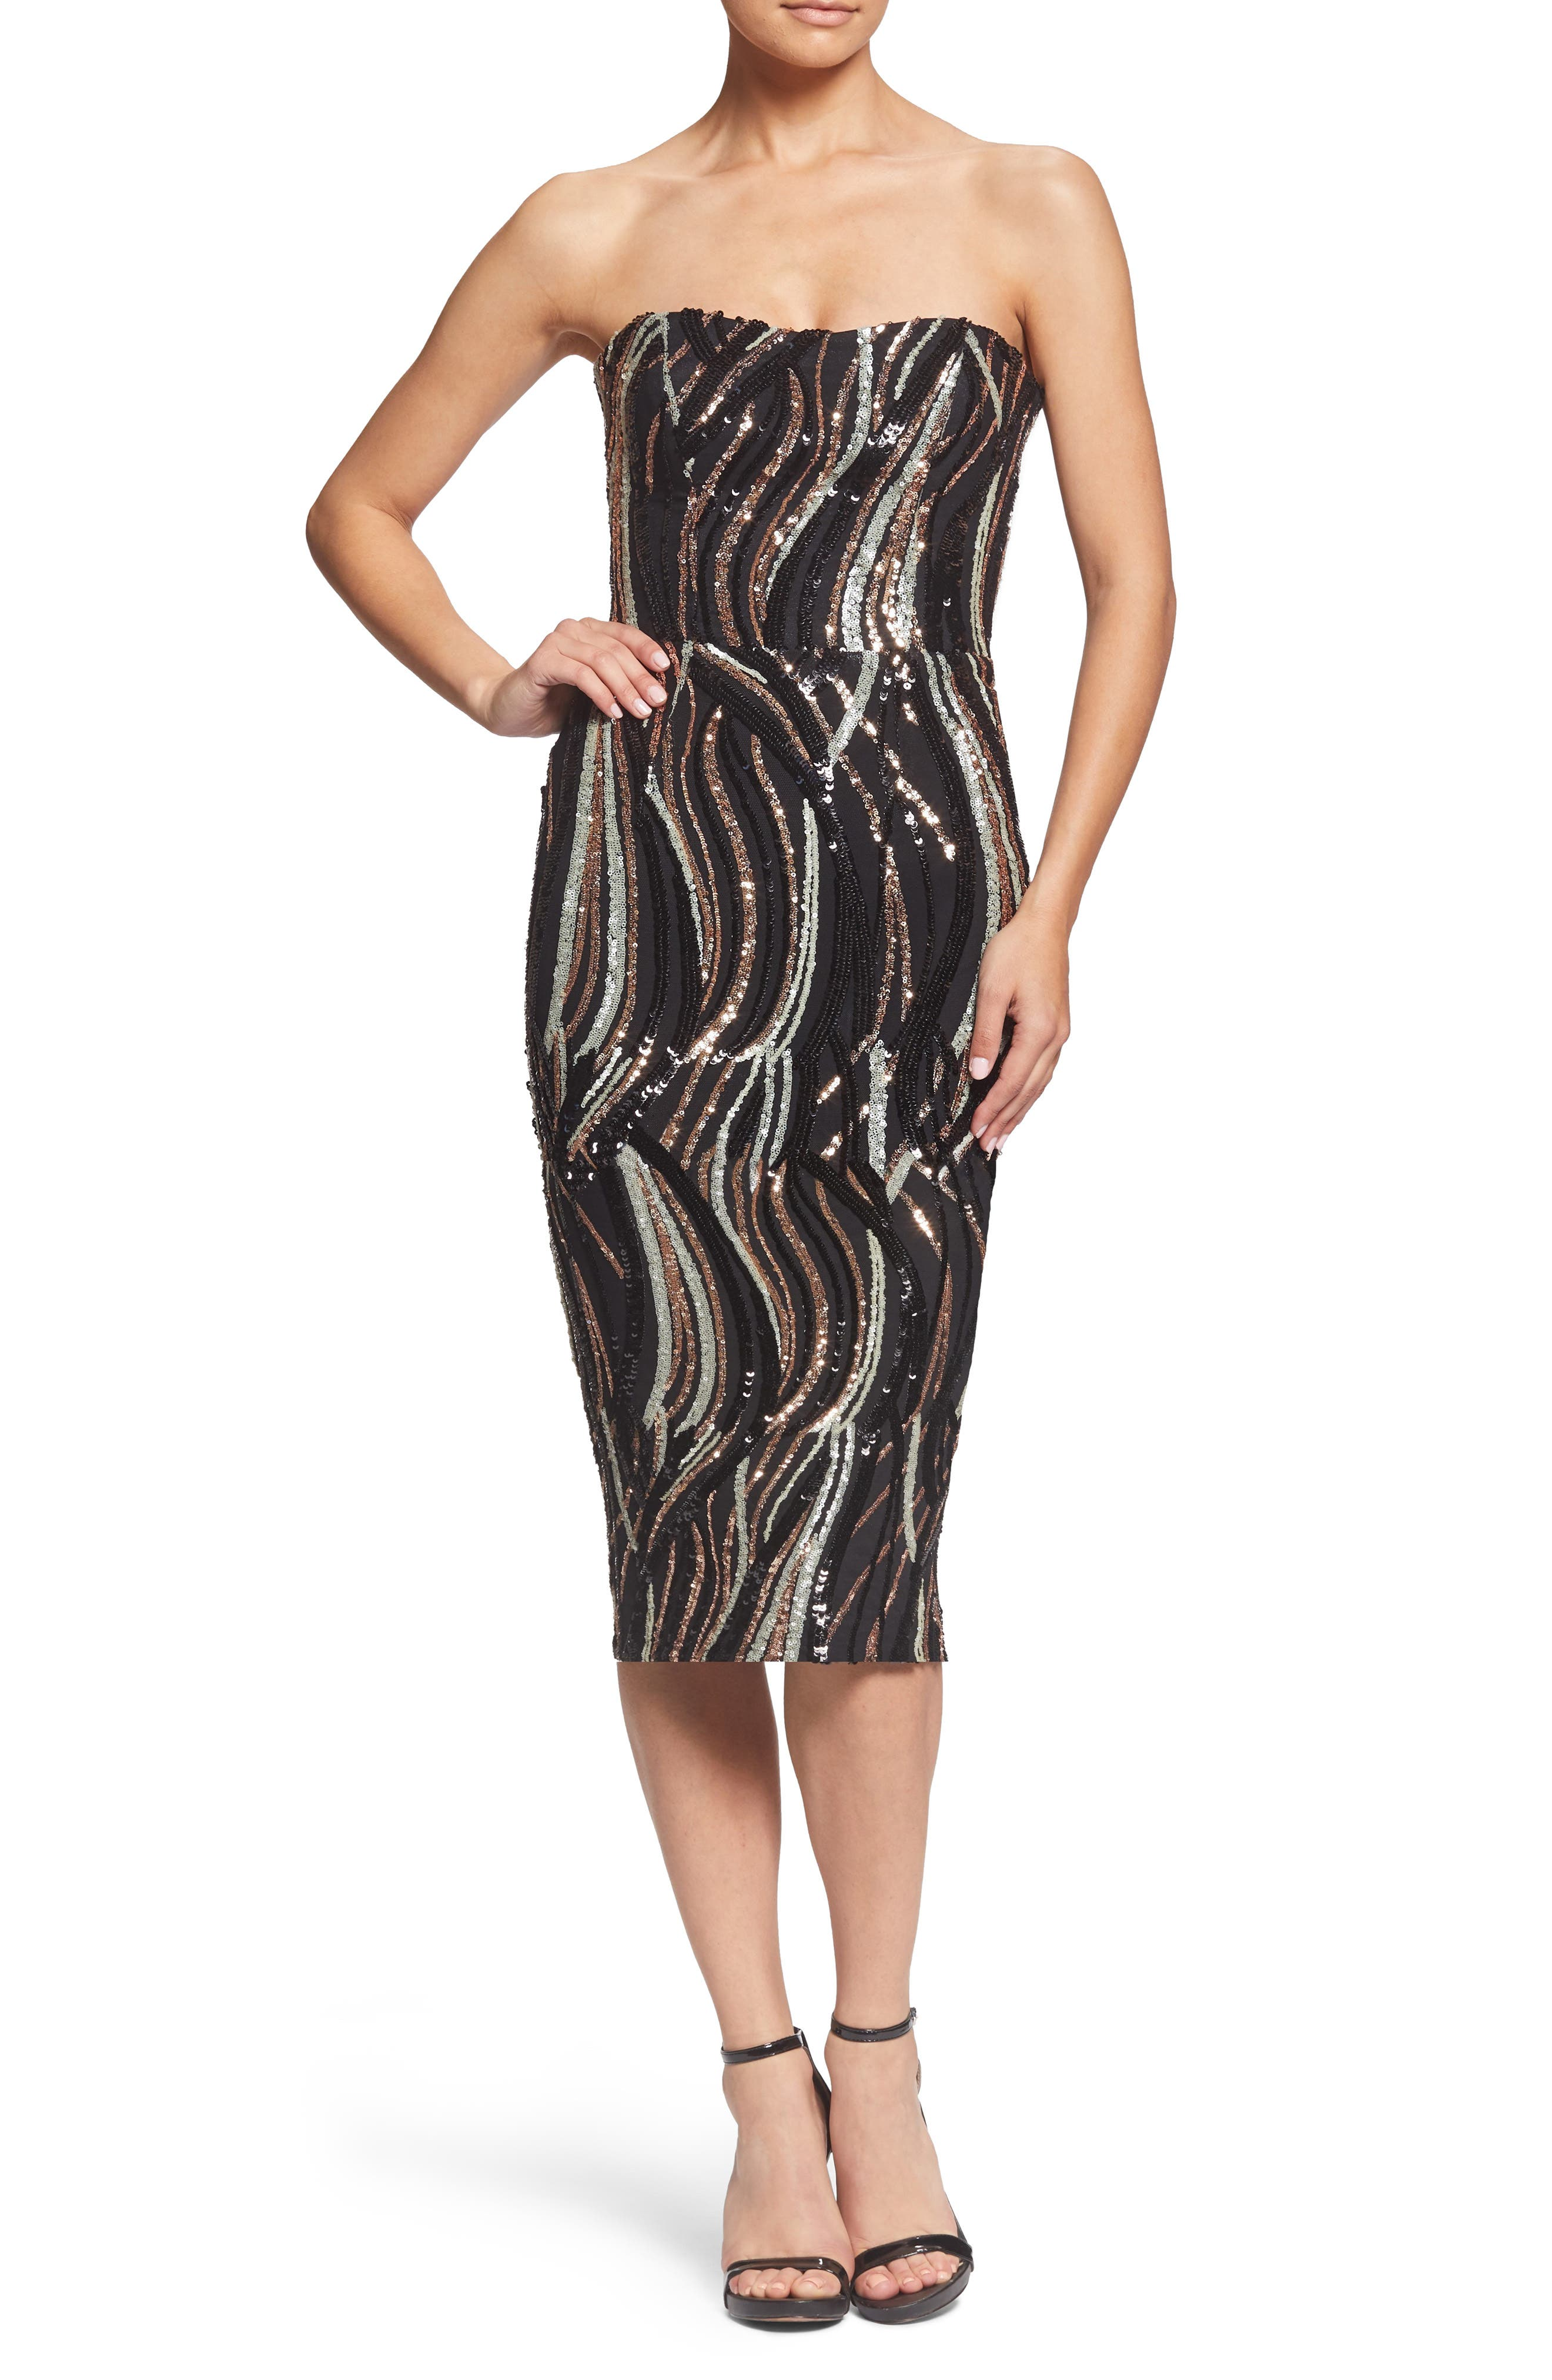 Claire Swirl Stripe Strapless Body-Con Dress,                             Main thumbnail 1, color,                             BLACK/ BRONZE/ BONE